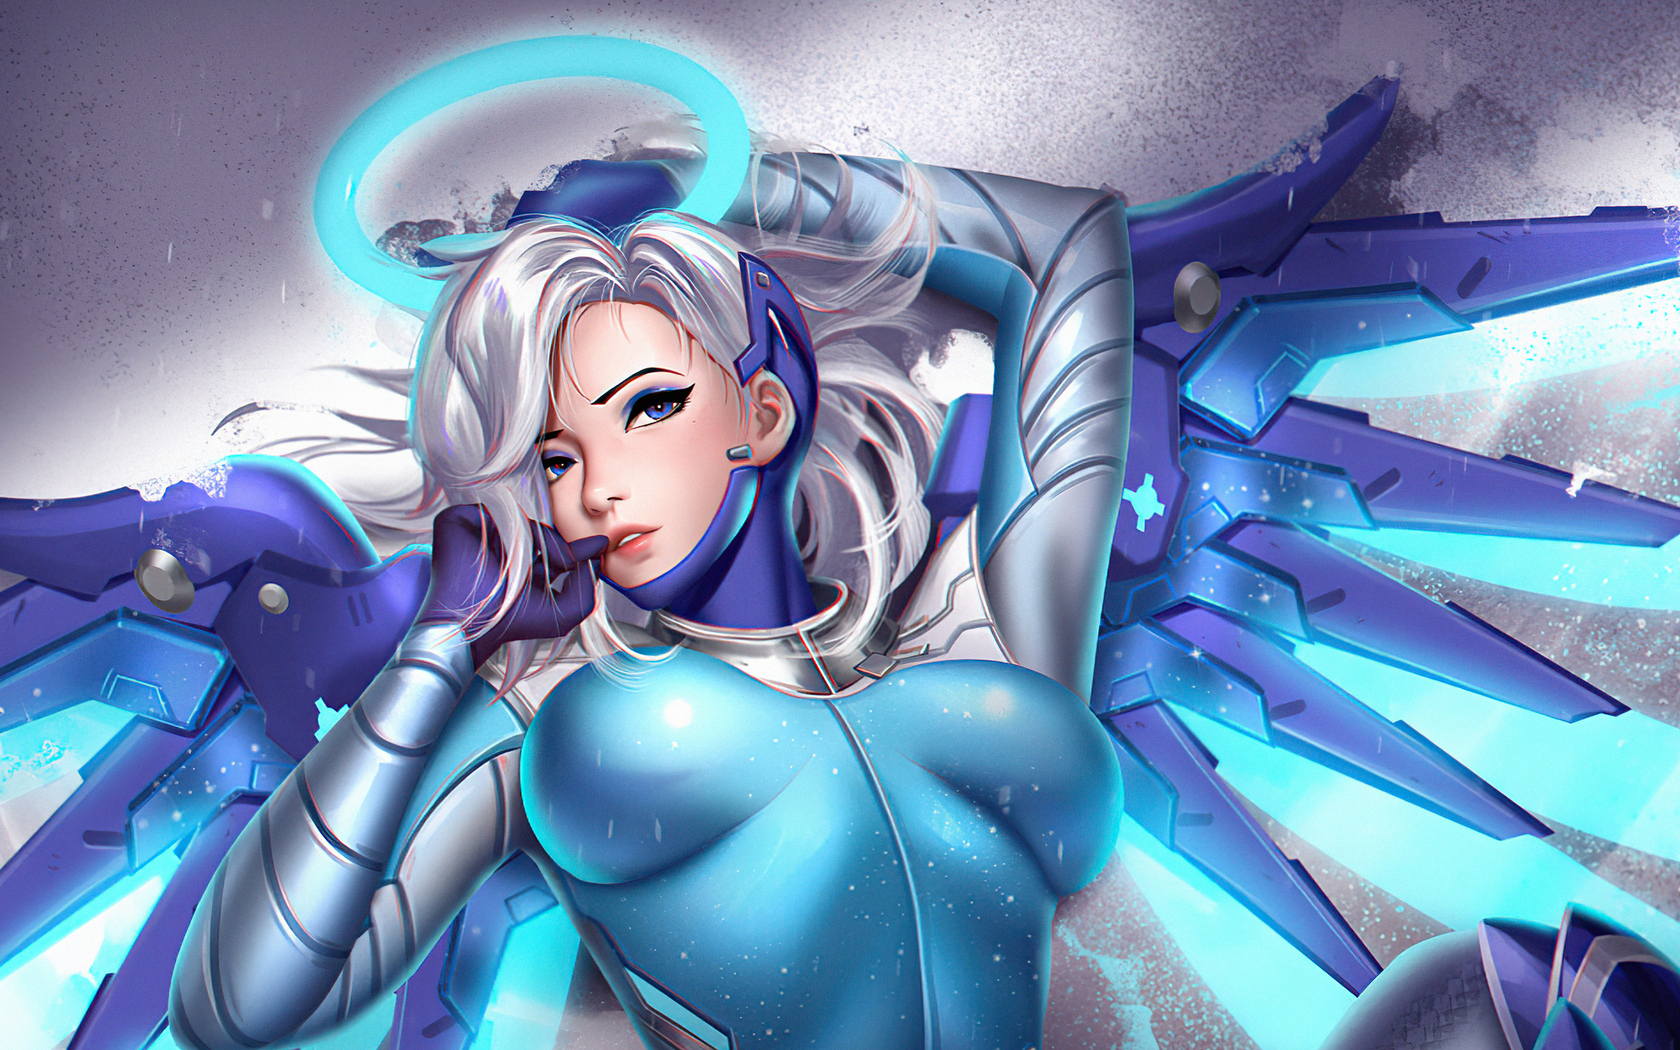 snow-angel-mercy-overwatch-4k-1k.jpg